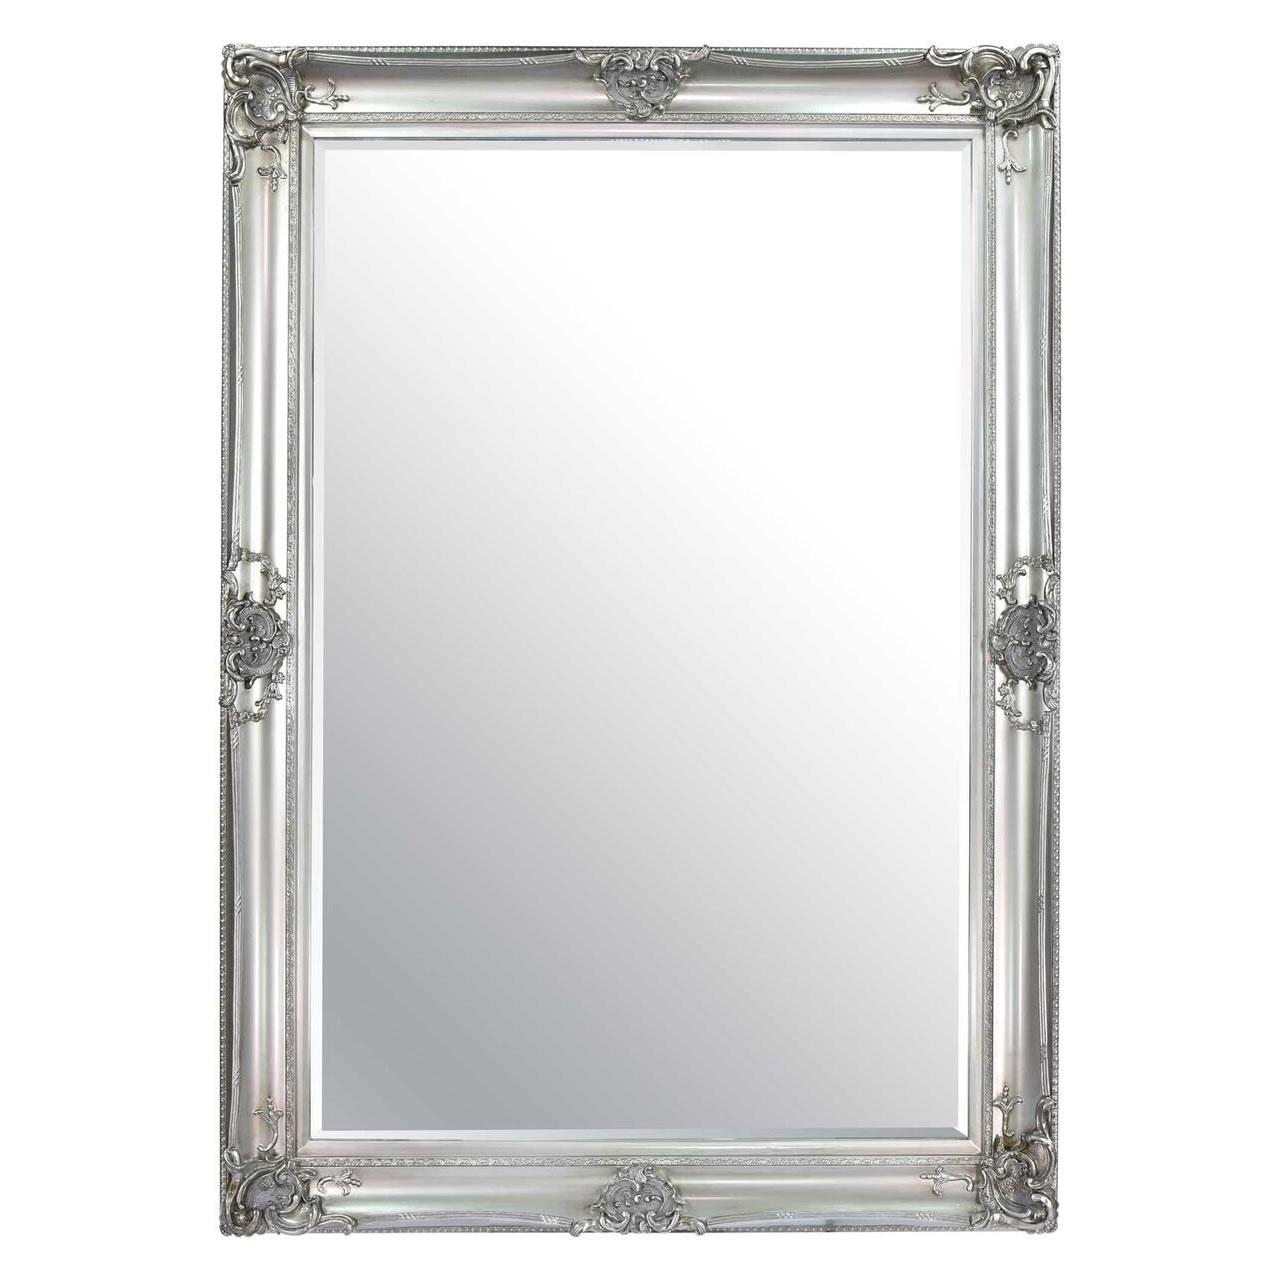 Ornate Framed Mirrors Intended For Silver Ornate Wall Mirror (Image 12 of 20)